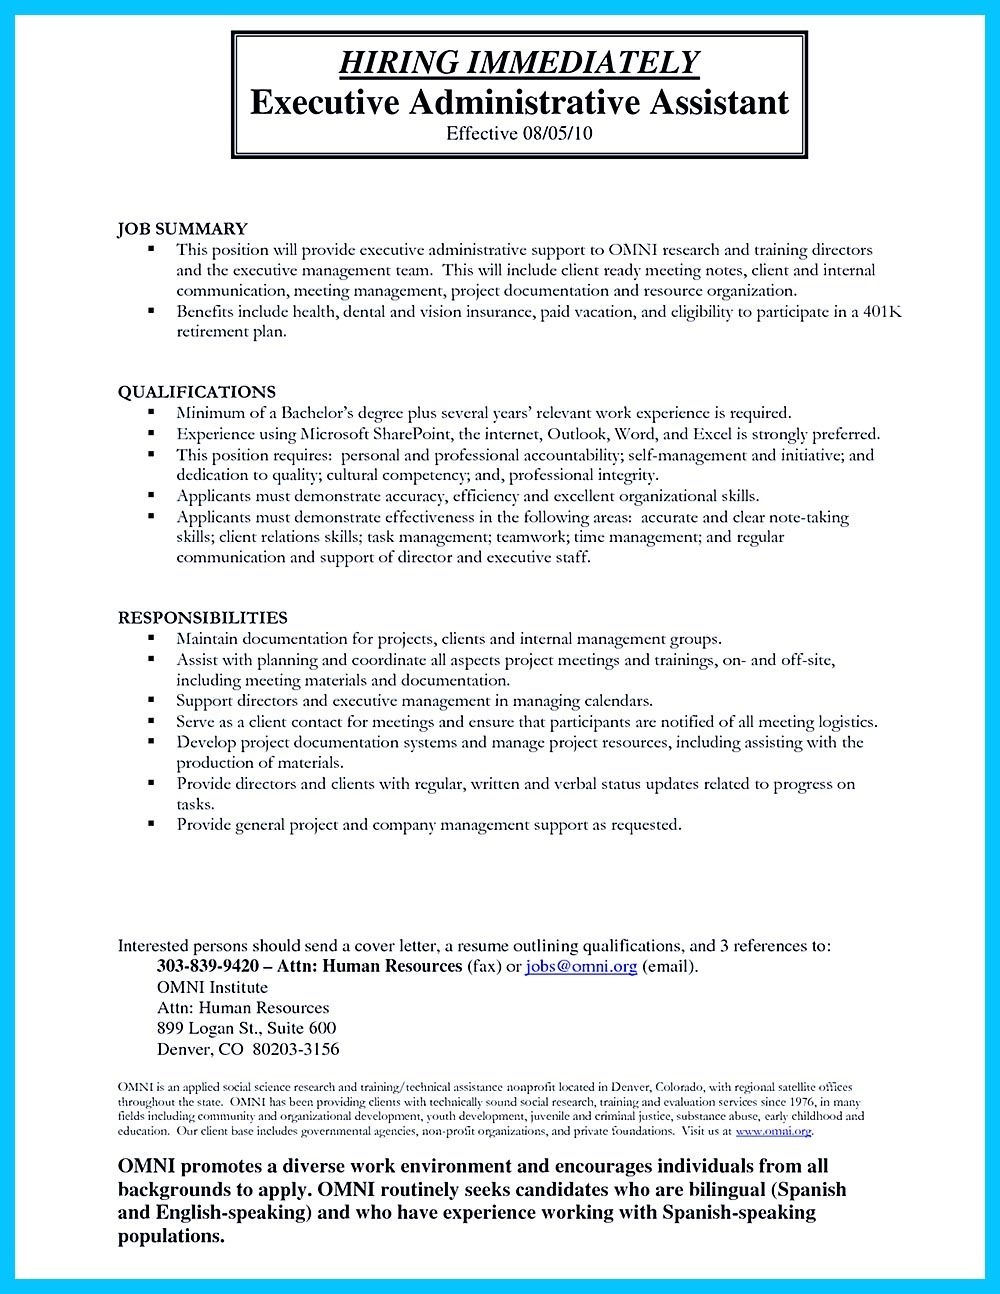 Administrative Assistant Resume Sample Unique In Writing Entry Level Administrative Assistant Resume You Need To .